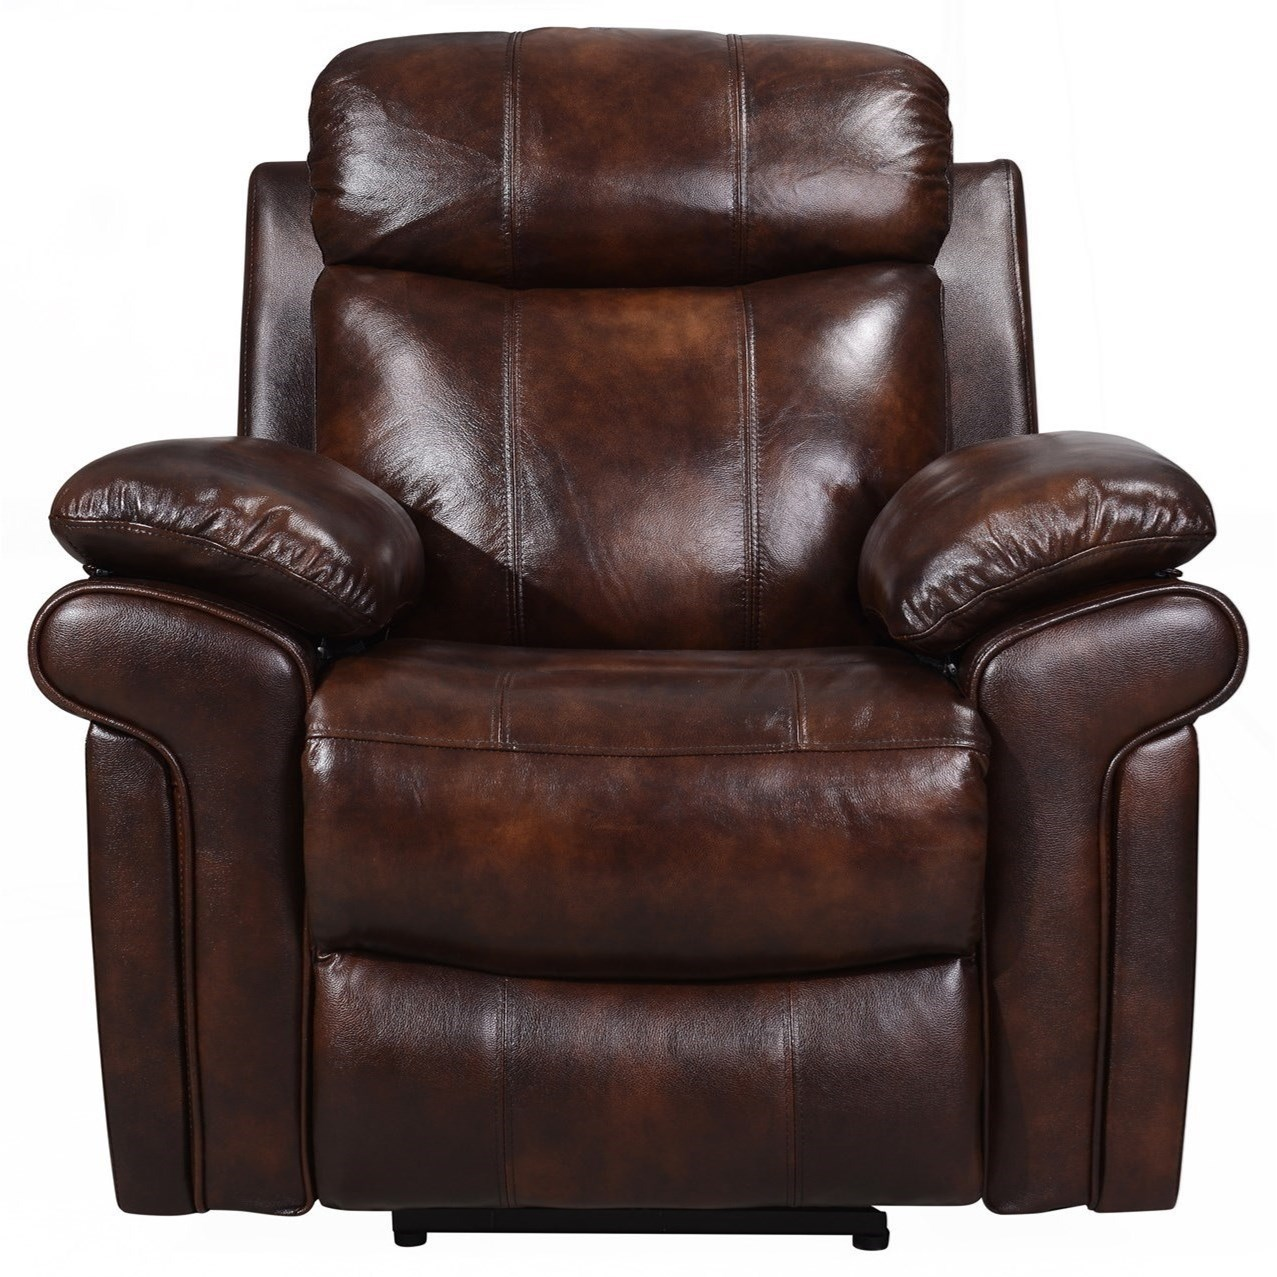 power reclining sofa made in usa jcpenney purple sofas joplin leather recliner belfort furniture three way recliners